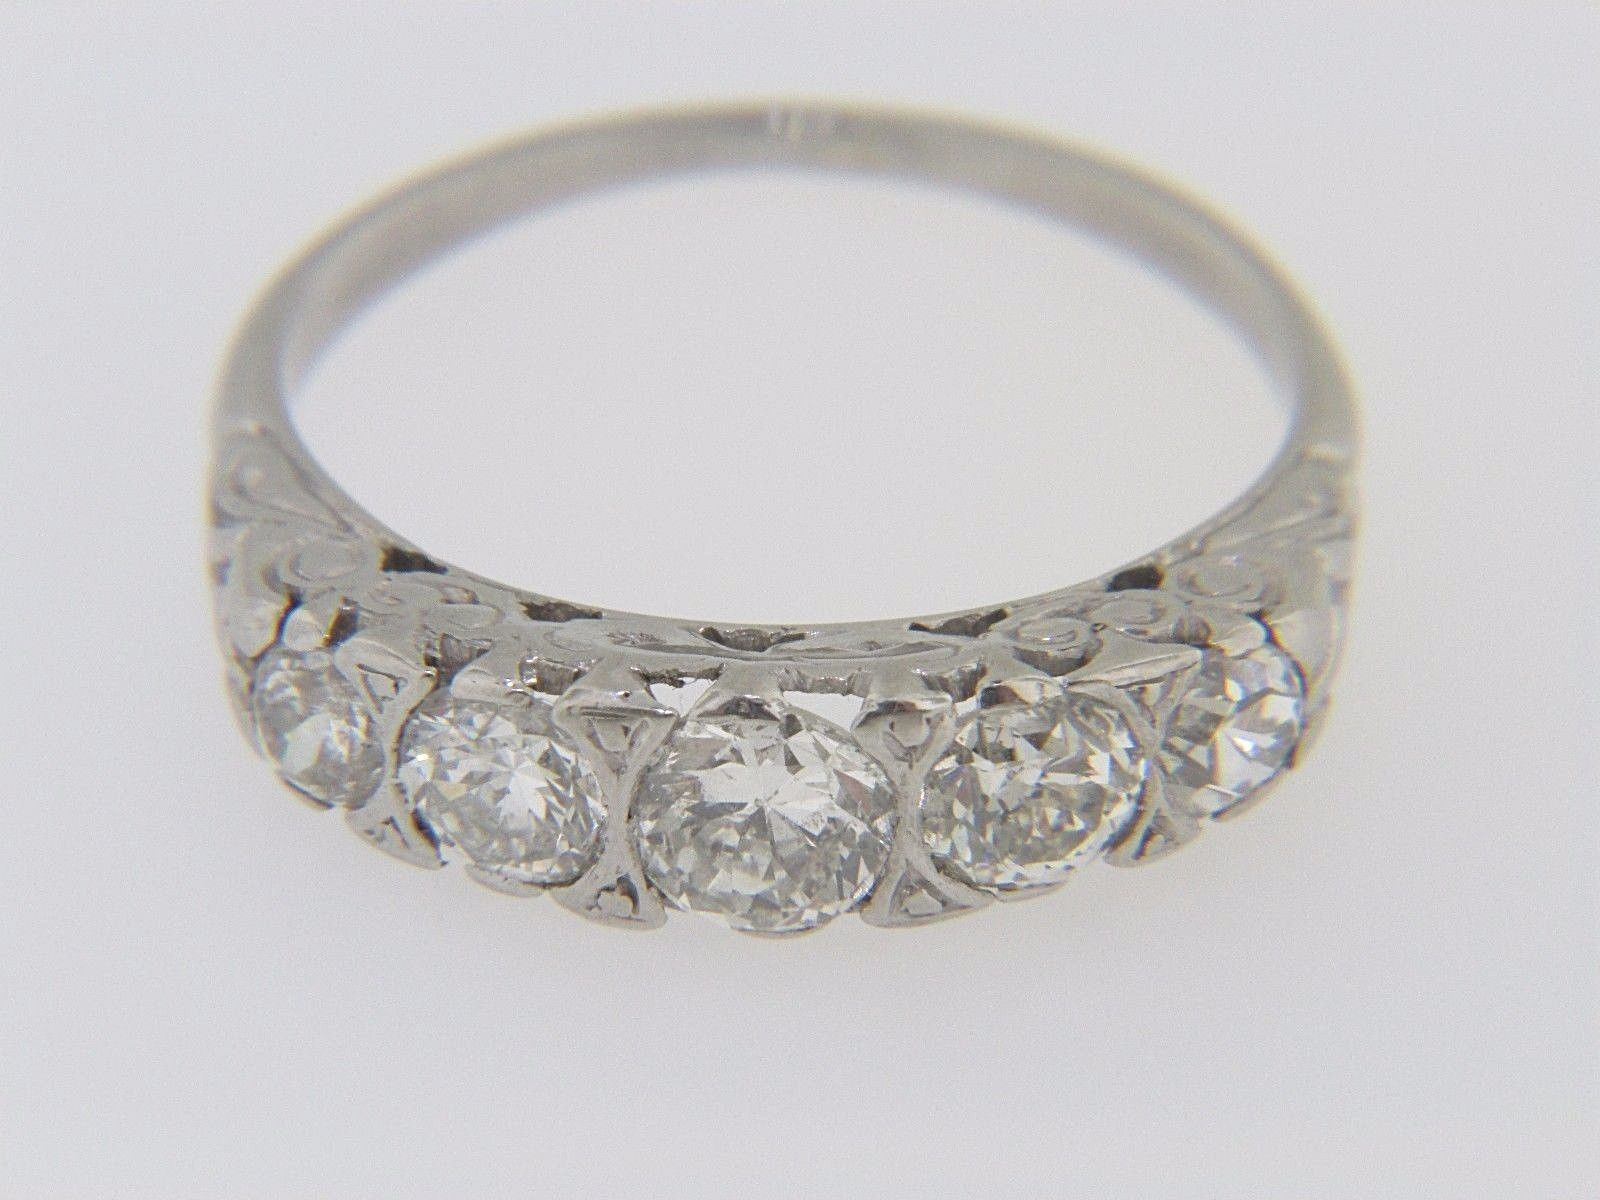 Vintage Diamond Rings | Thomas Jewelers Inside Most Popular Vintage Circle Rings (View 16 of 25)